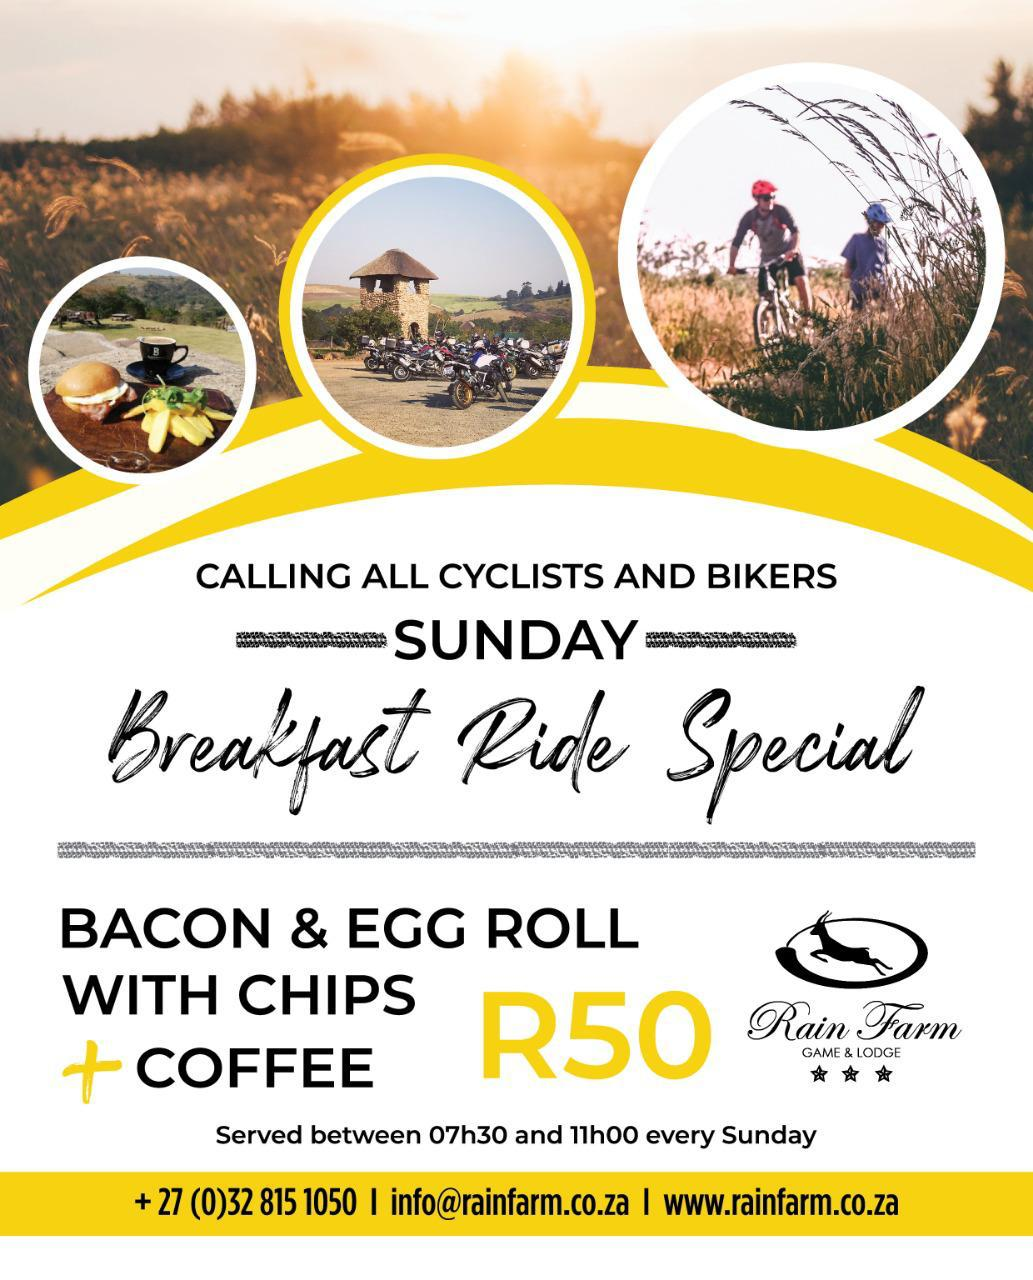 Breakfast Ride Special